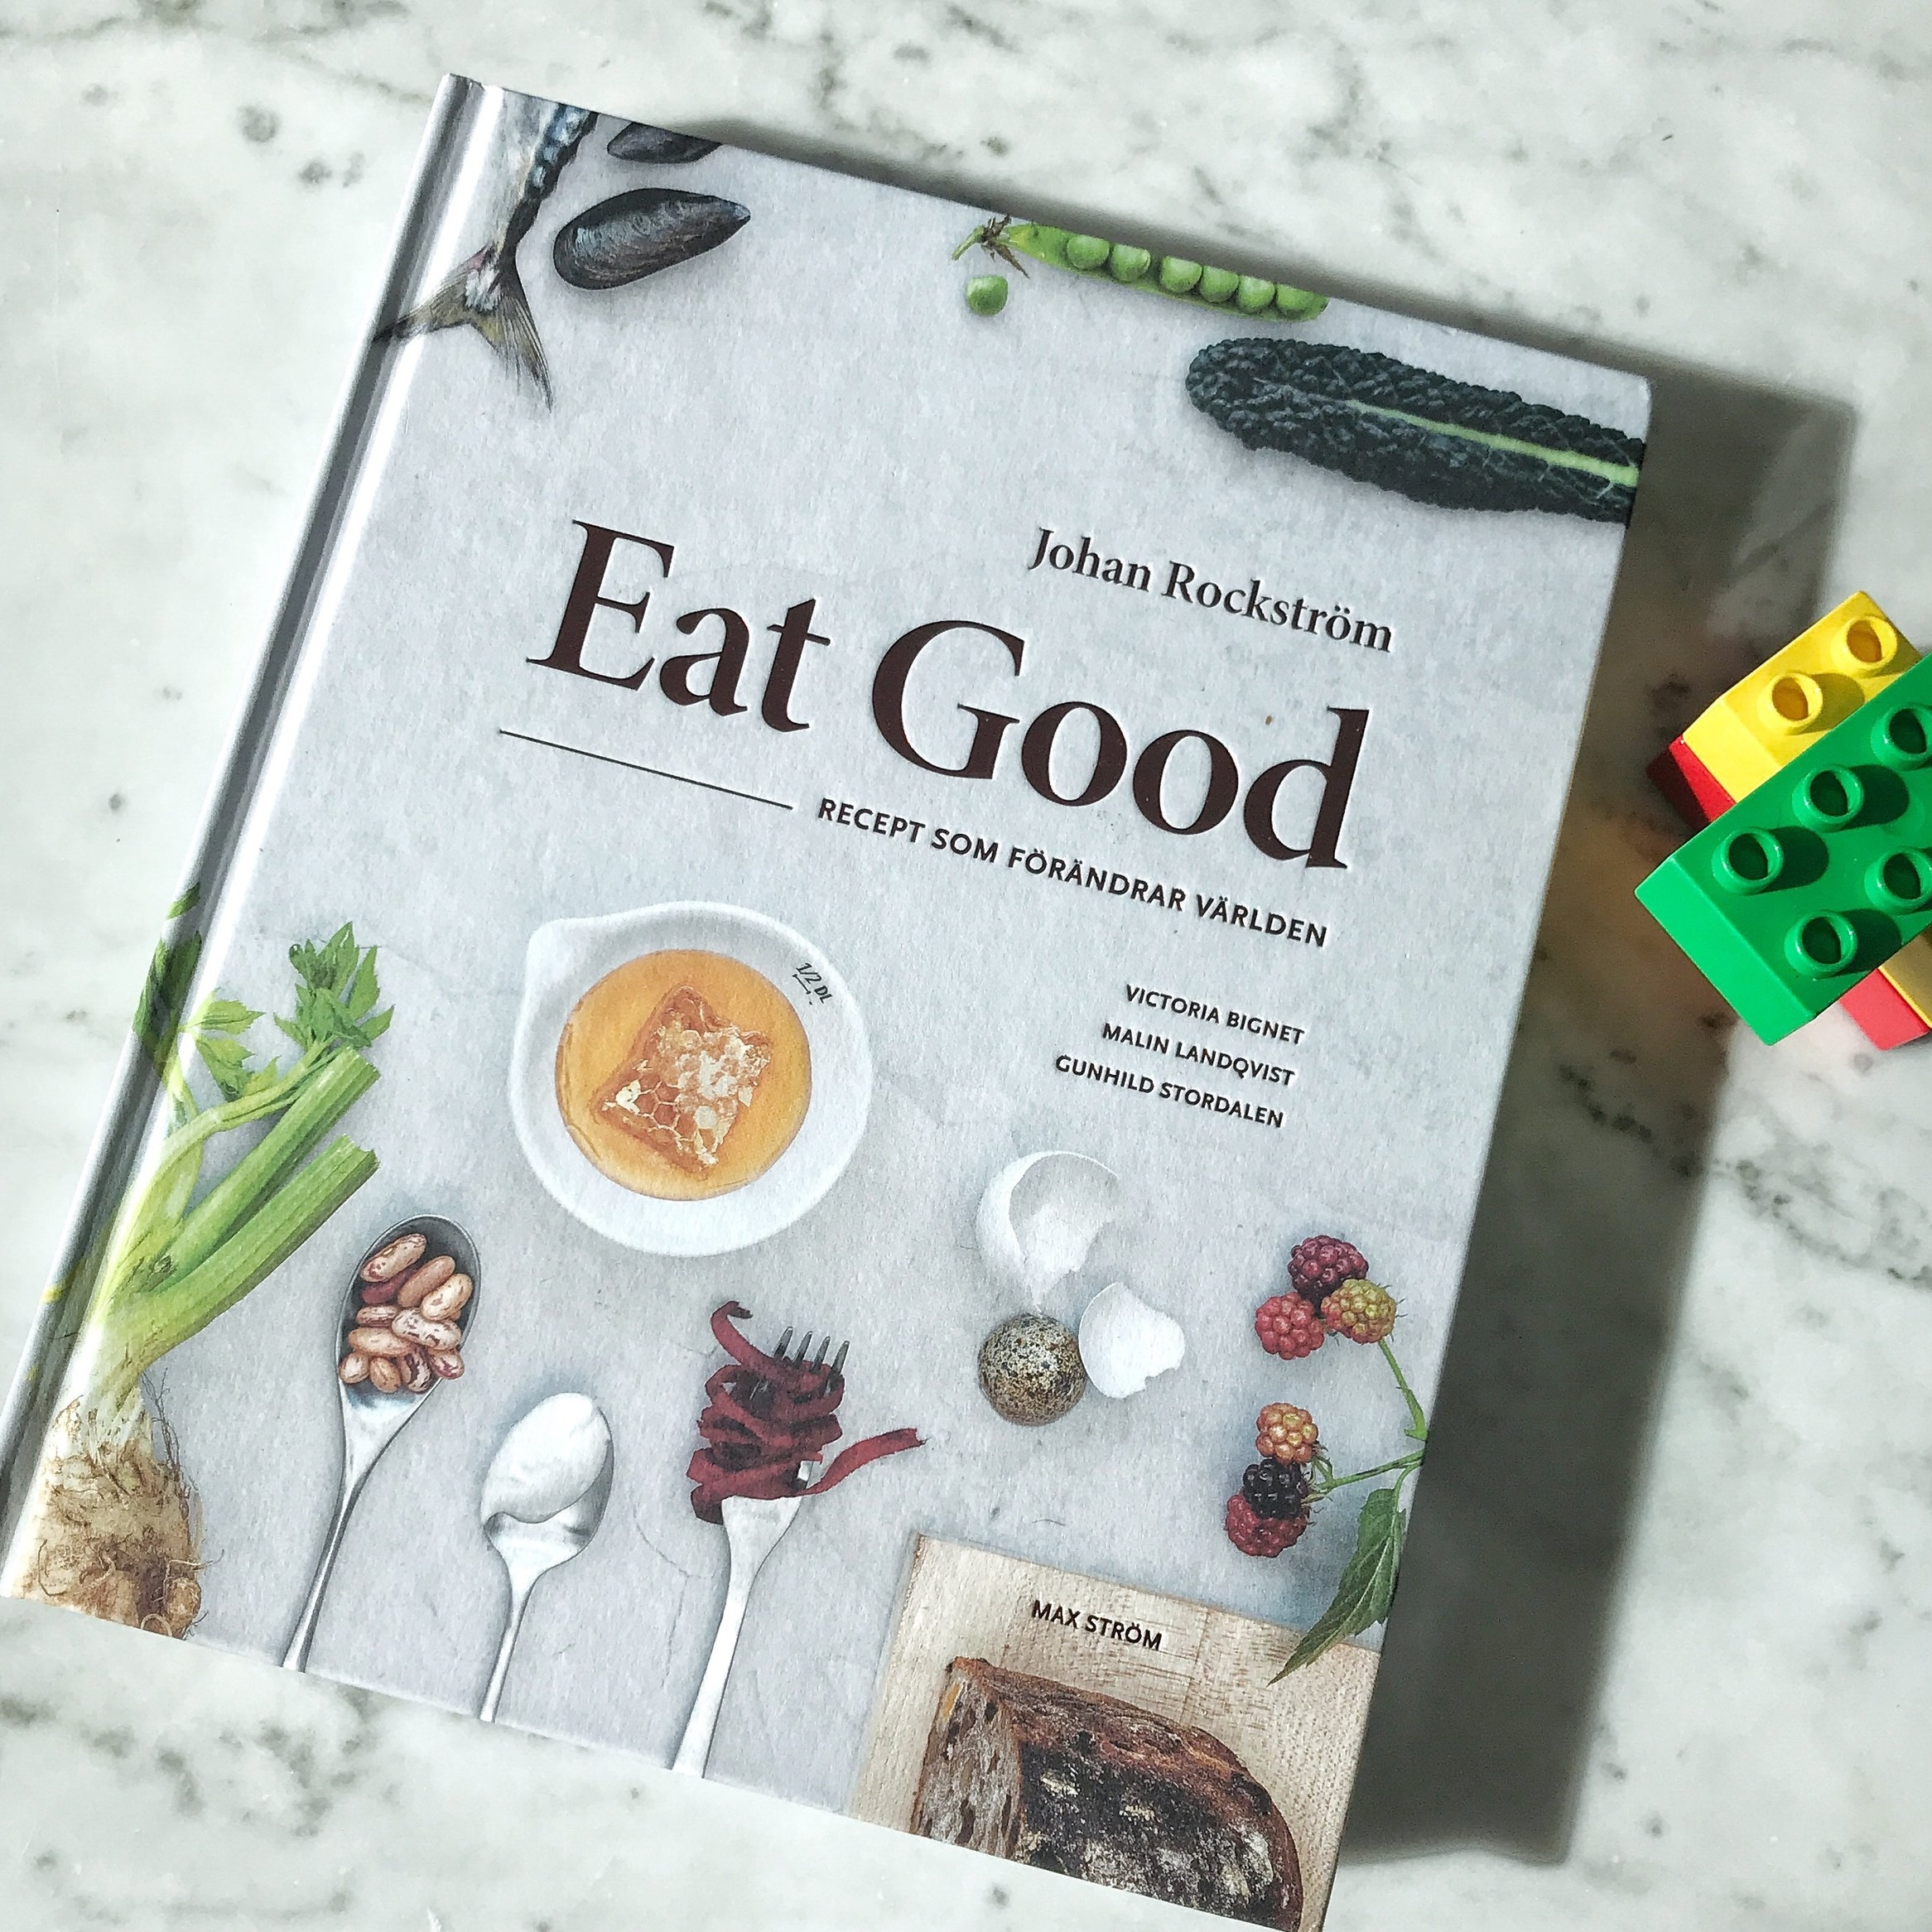 Oct 2, 2018.    Eat Good   Tips on Good reading! These mouth watering pages gives you a Good hint of what the EAT-Lancet Commission report will unravel (awaiting to be published any day now) with the same authors as this book. It's a Good way to look into your own relationsthip to food in time for the necessary world changes coming up. For more info about The EAT-Lancet report,  click here .